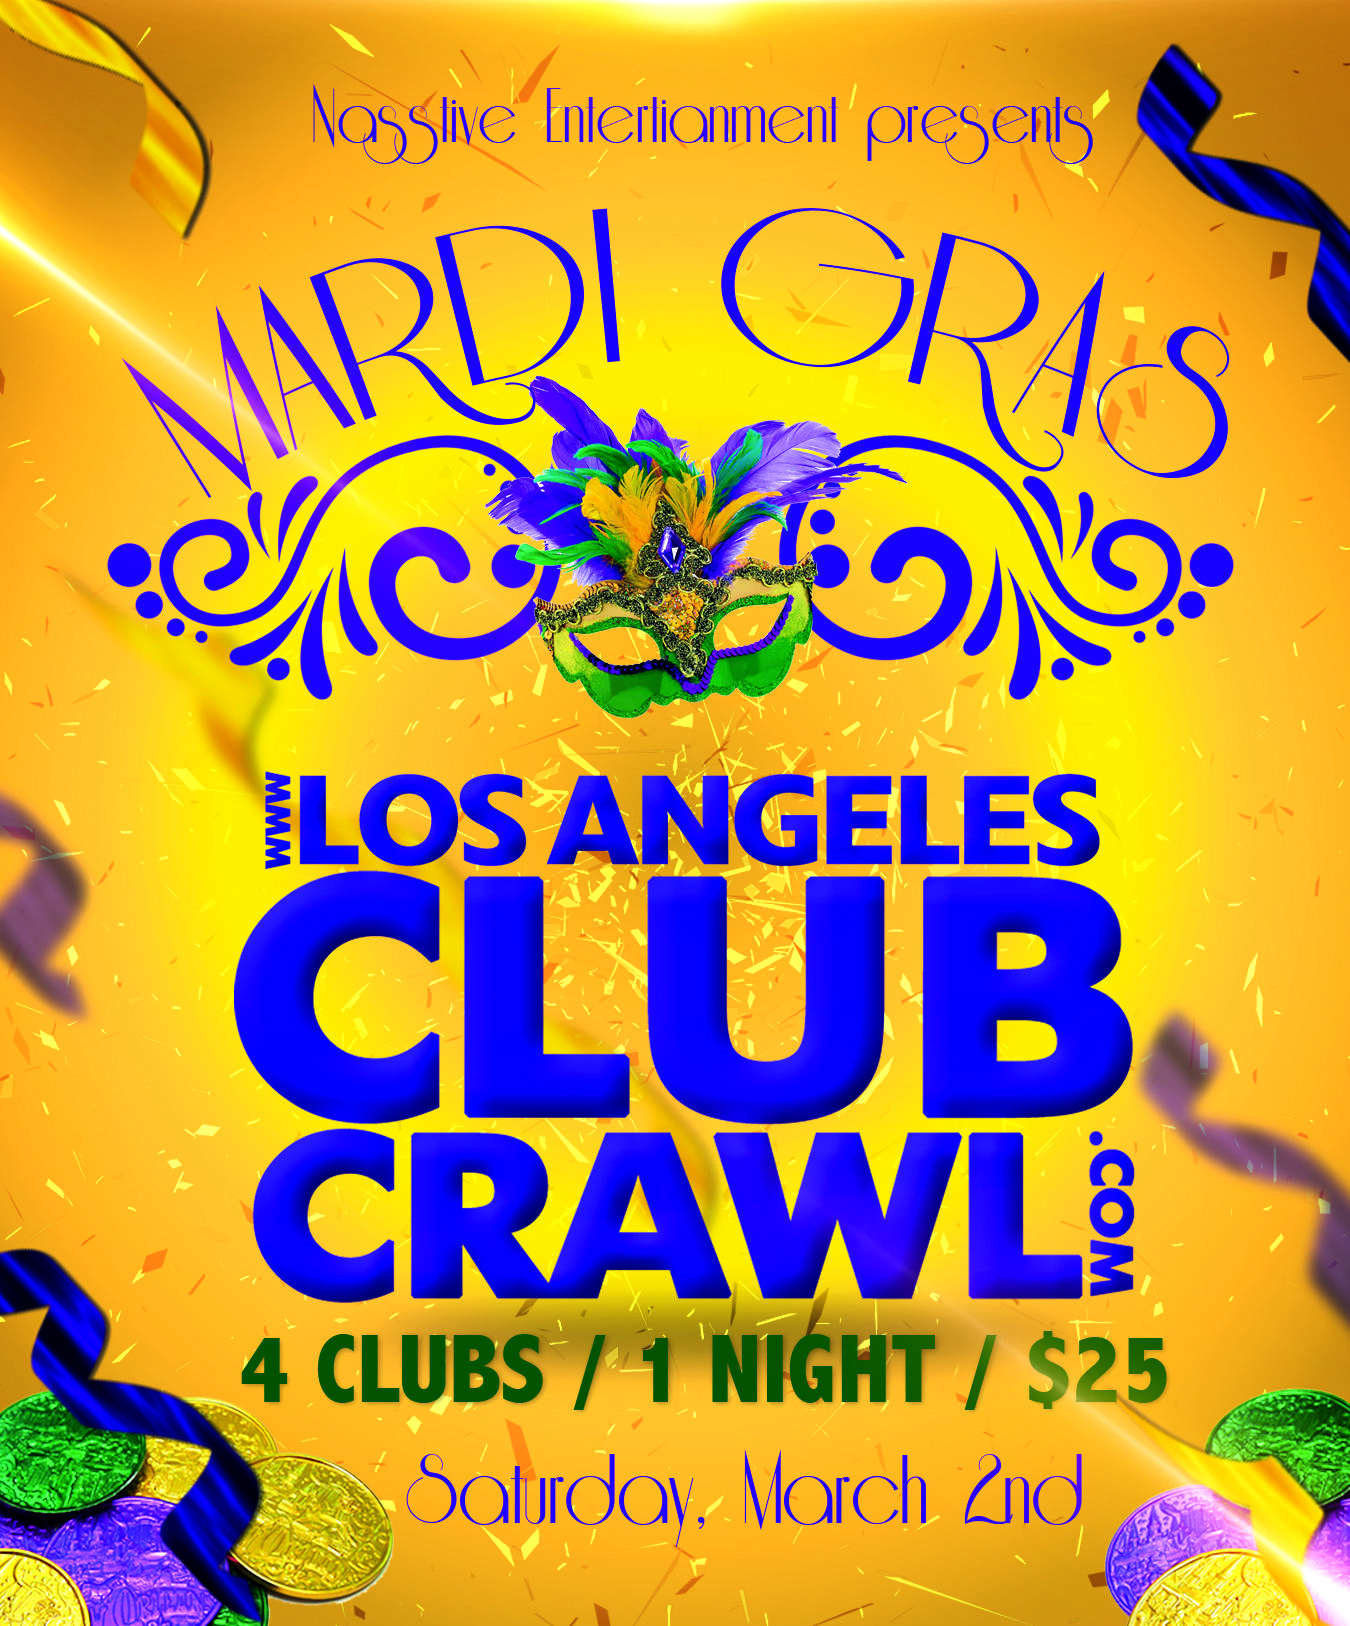 Downtown LA MARDI GRAS Club Crawl - All access pass to 4 clubs in 1 night!